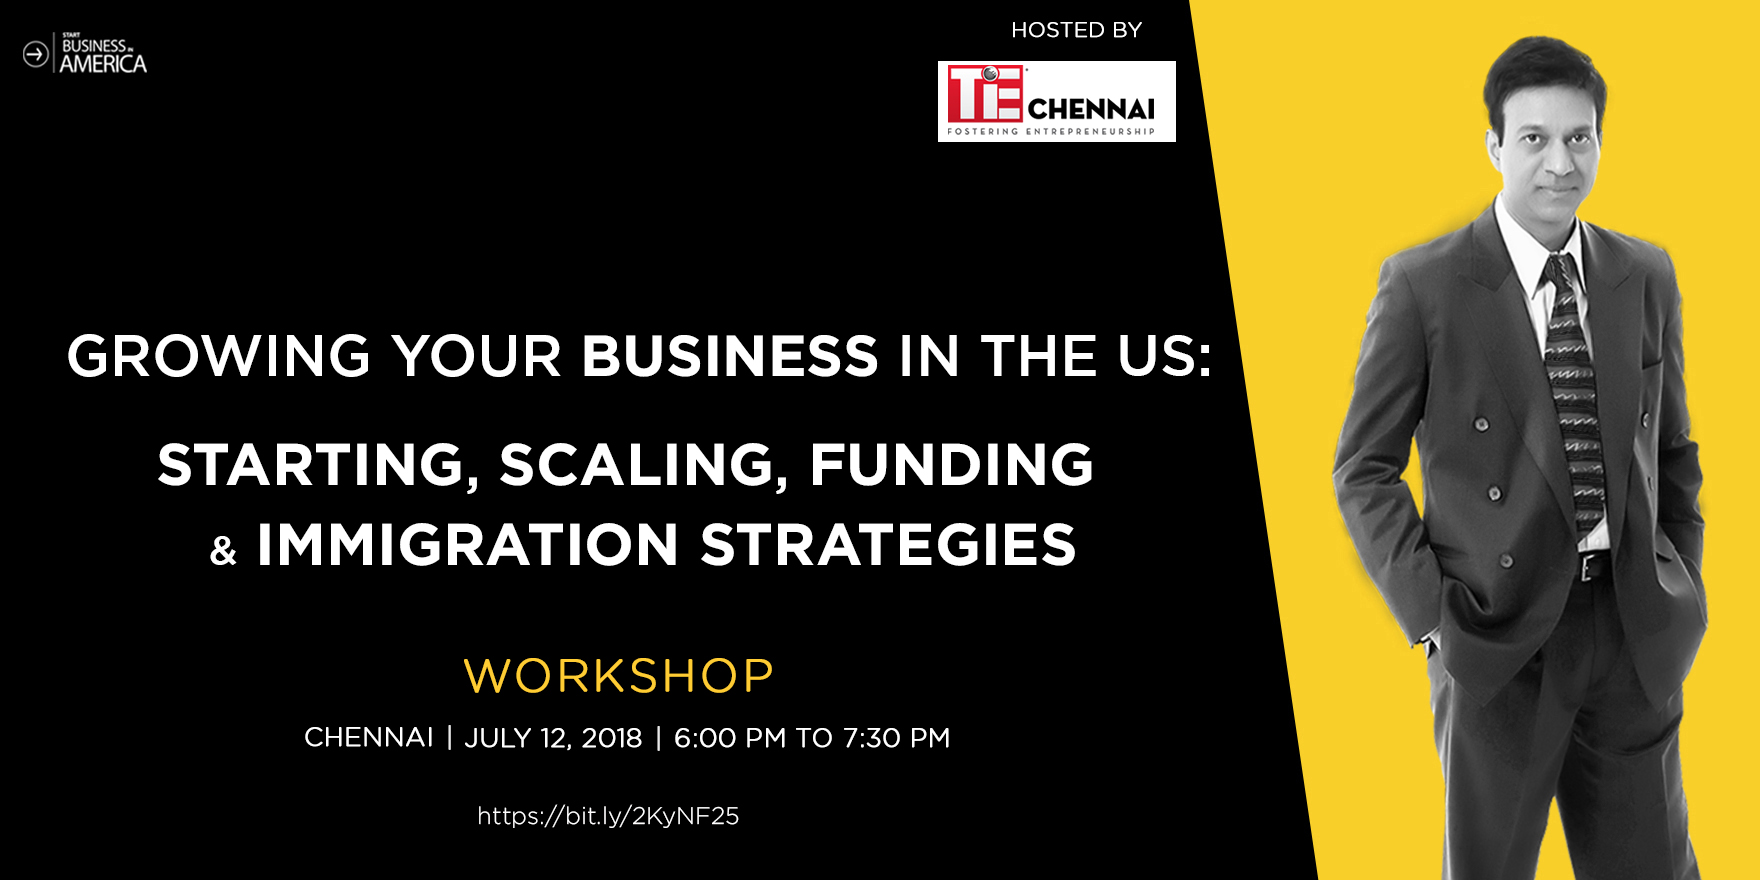 Growing Your Business In The US: Starting, Scaling & Funding Strategies, Chennai, Tamil Nadu, India